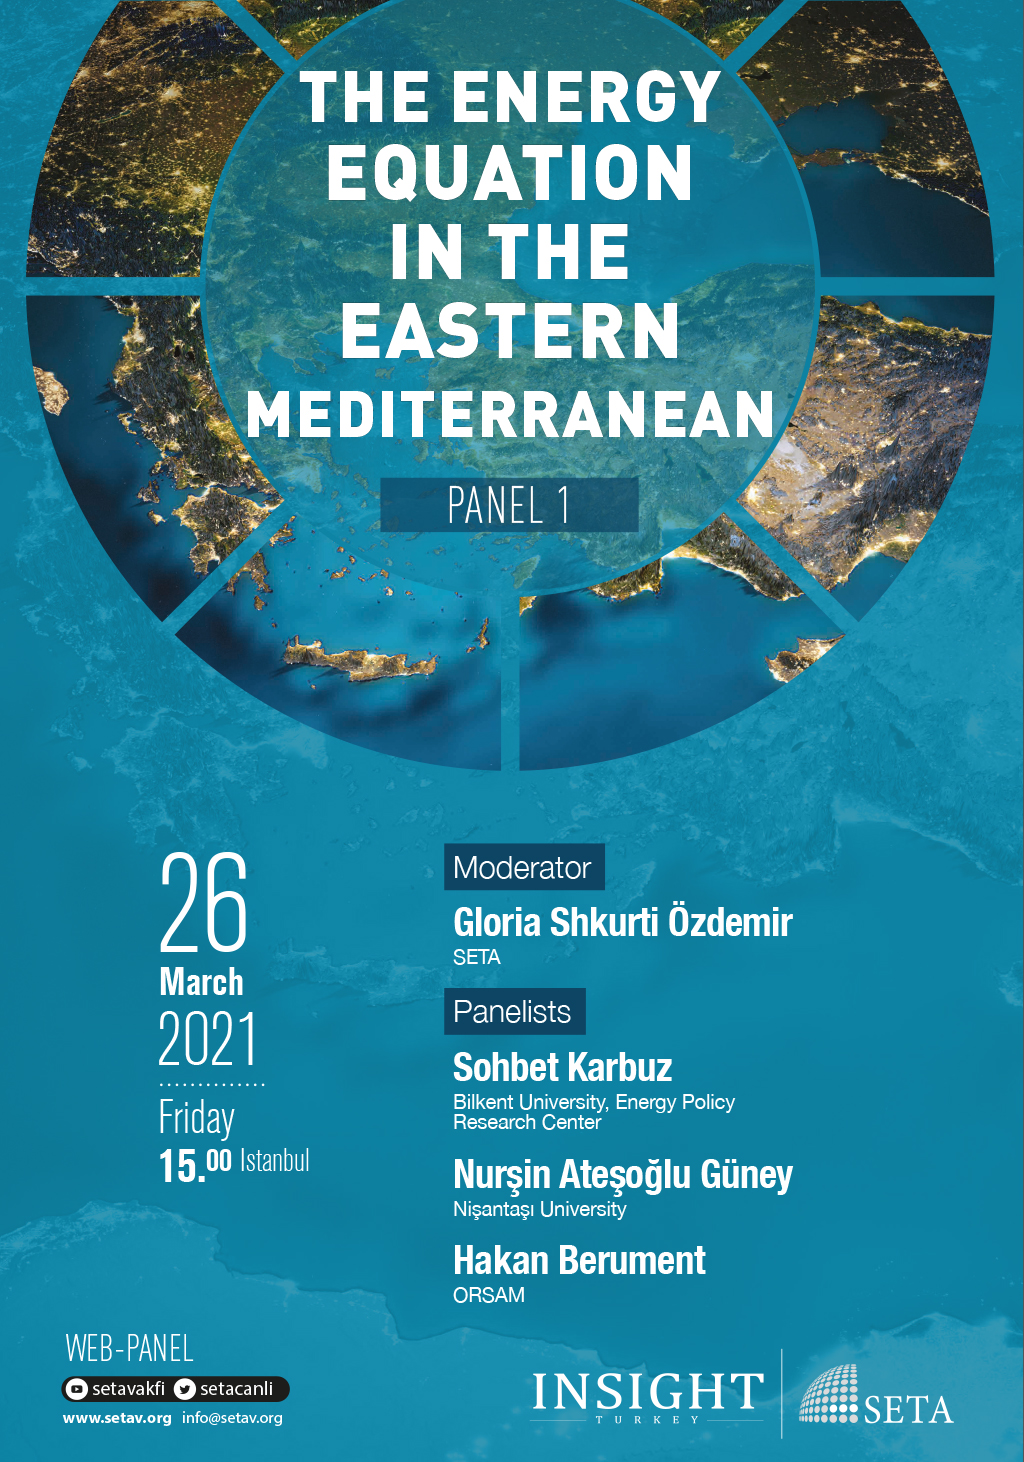 Web Panel: The Energy Equation in the Eastern Mediterranean (Panel 1)